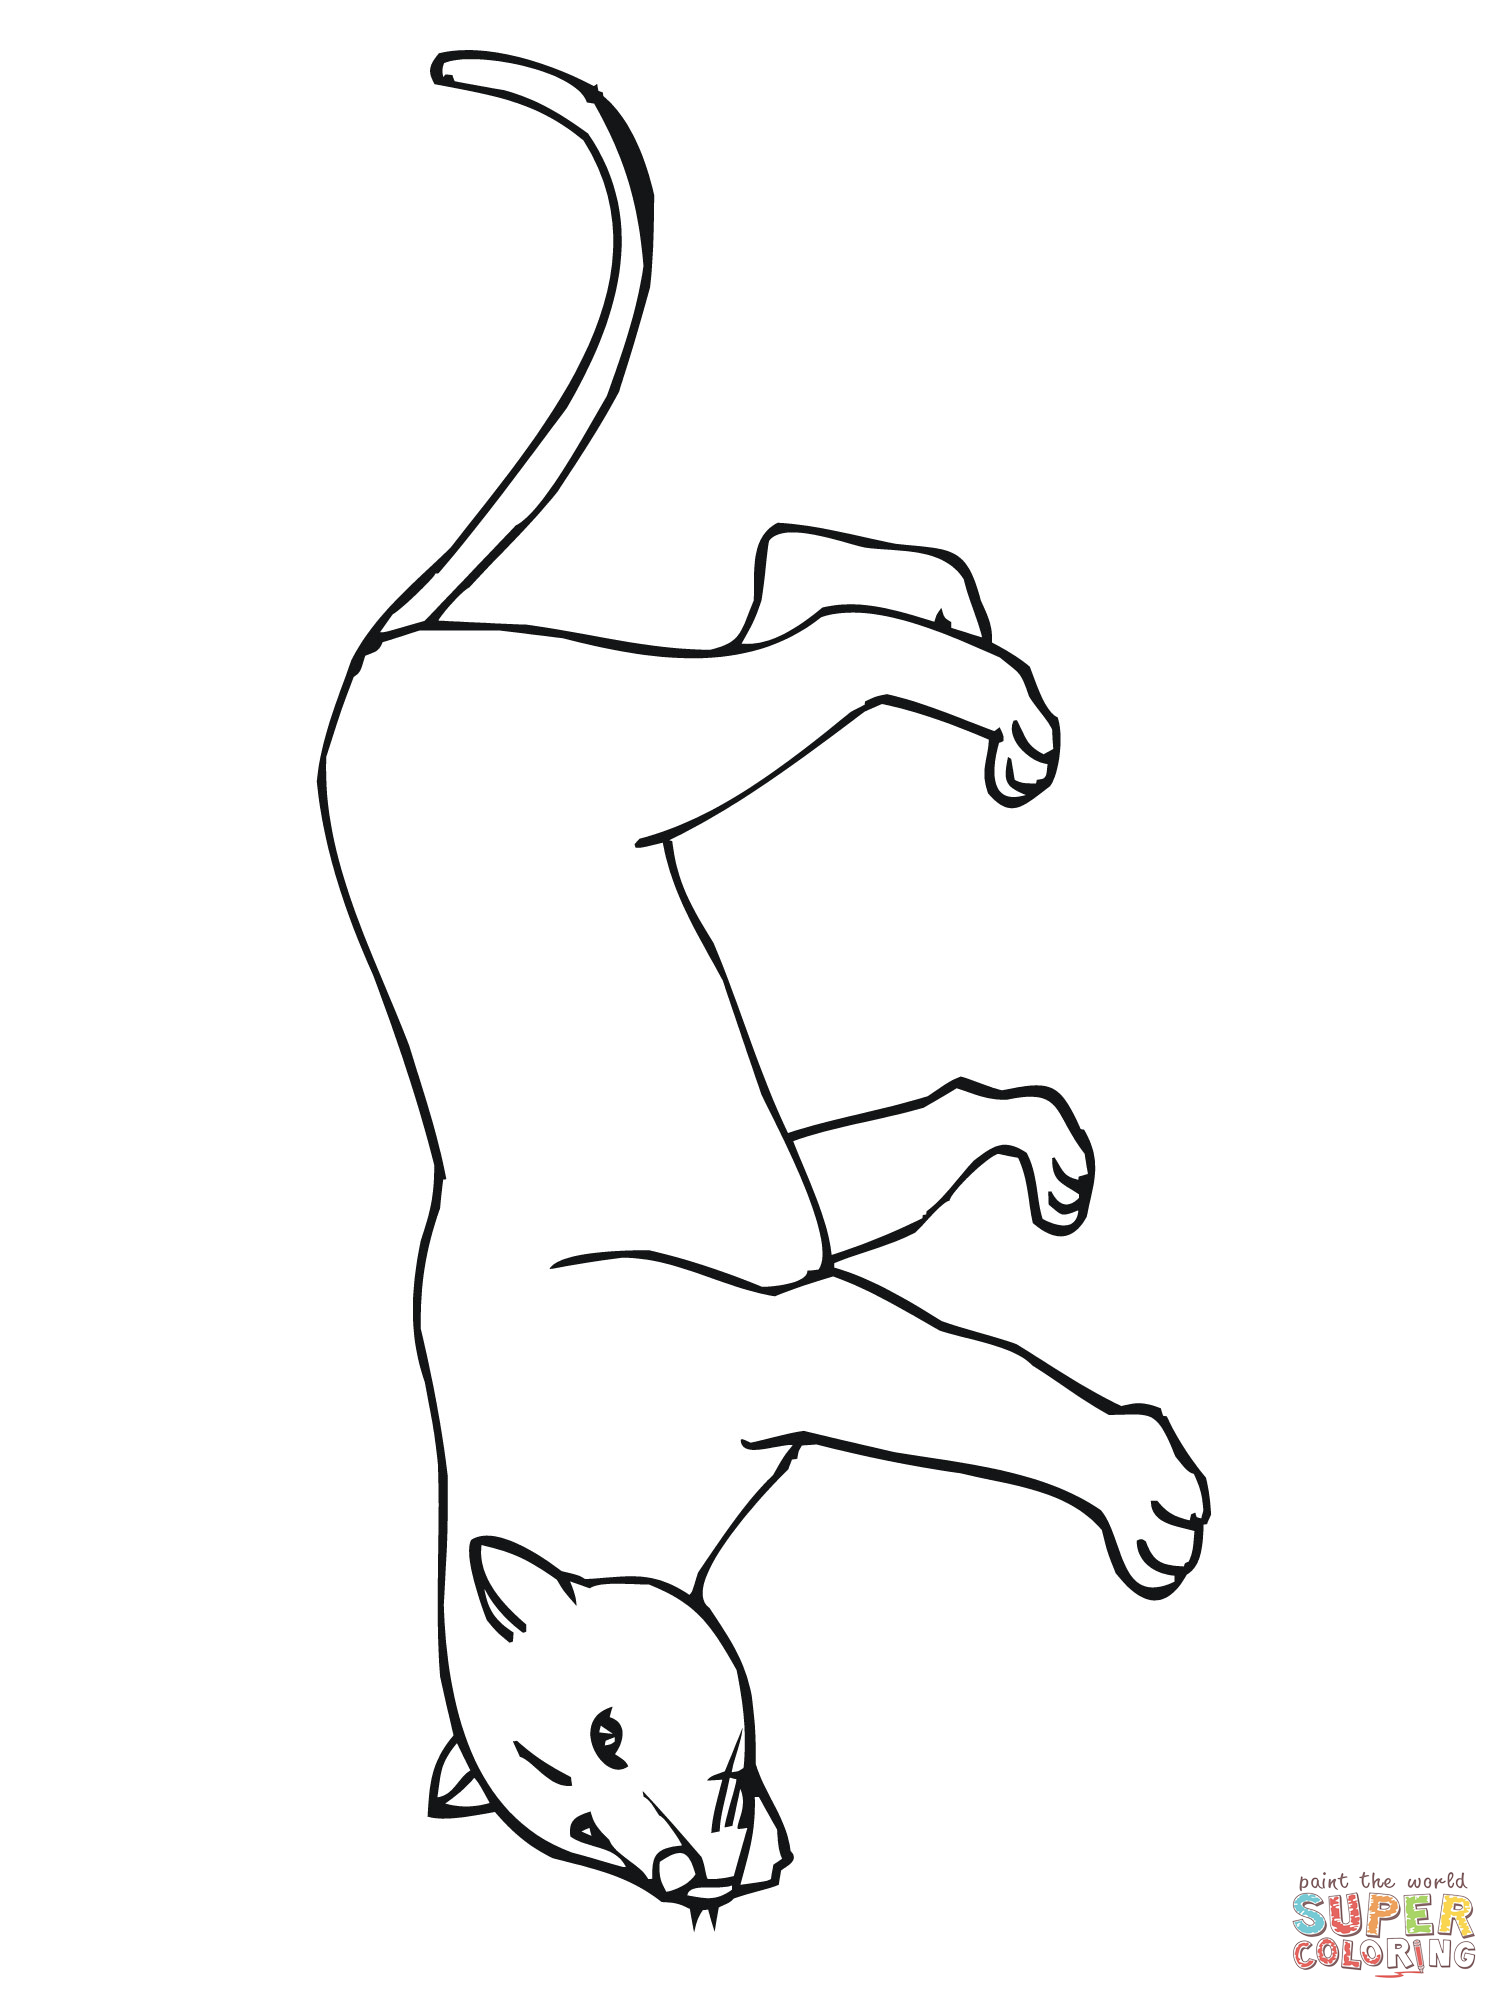 Panther Animal Coloring Pages Kids Coloring Pages 12